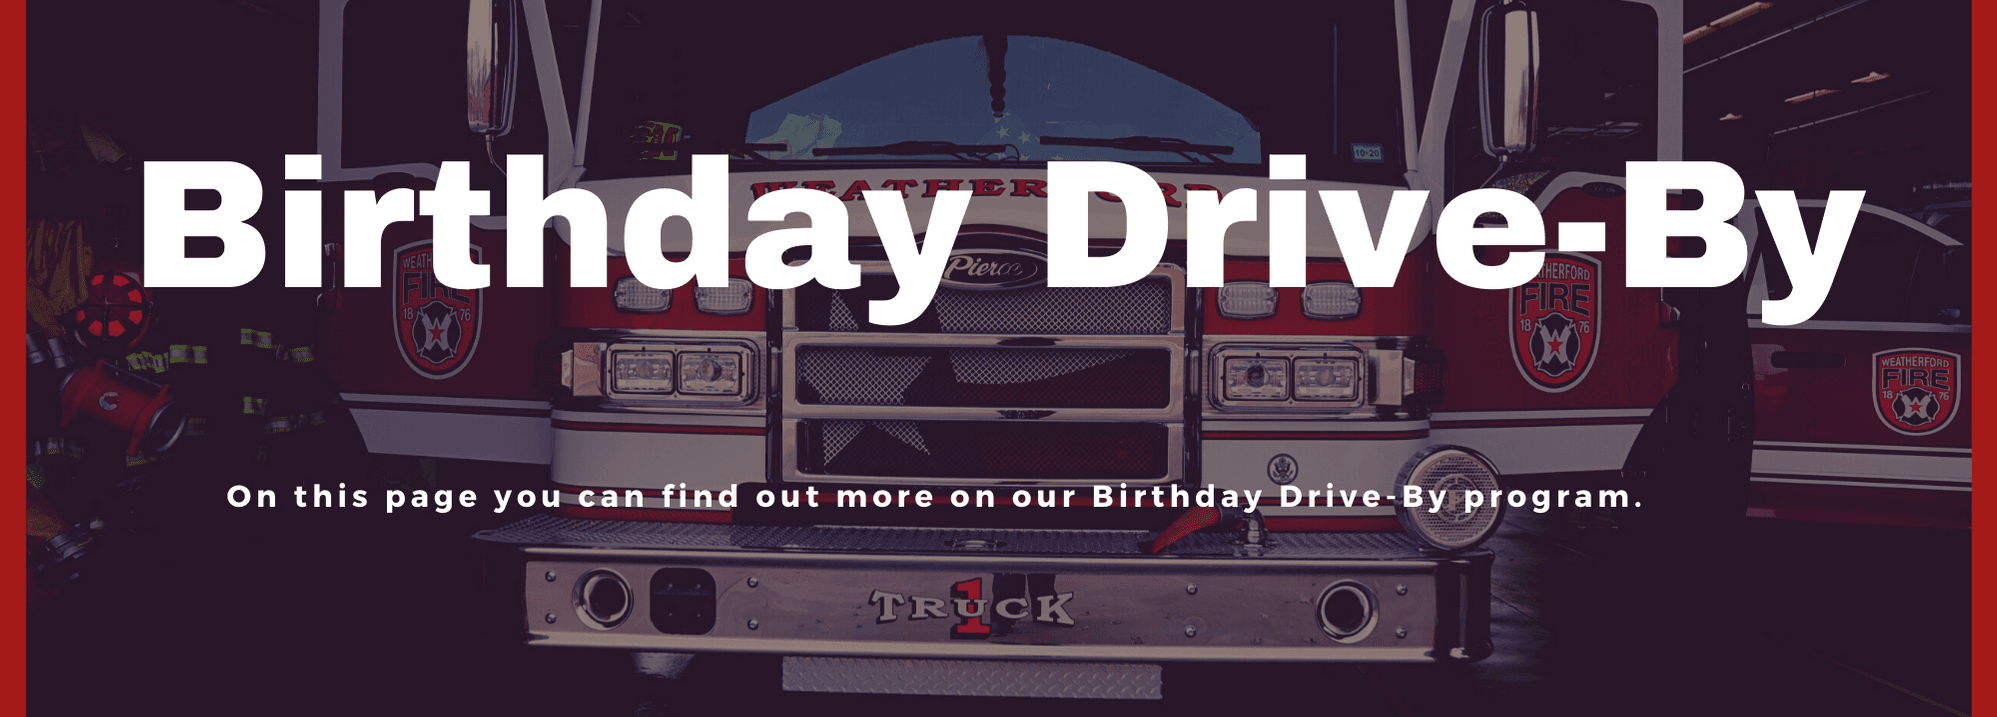 FD Drive By Program website Banner